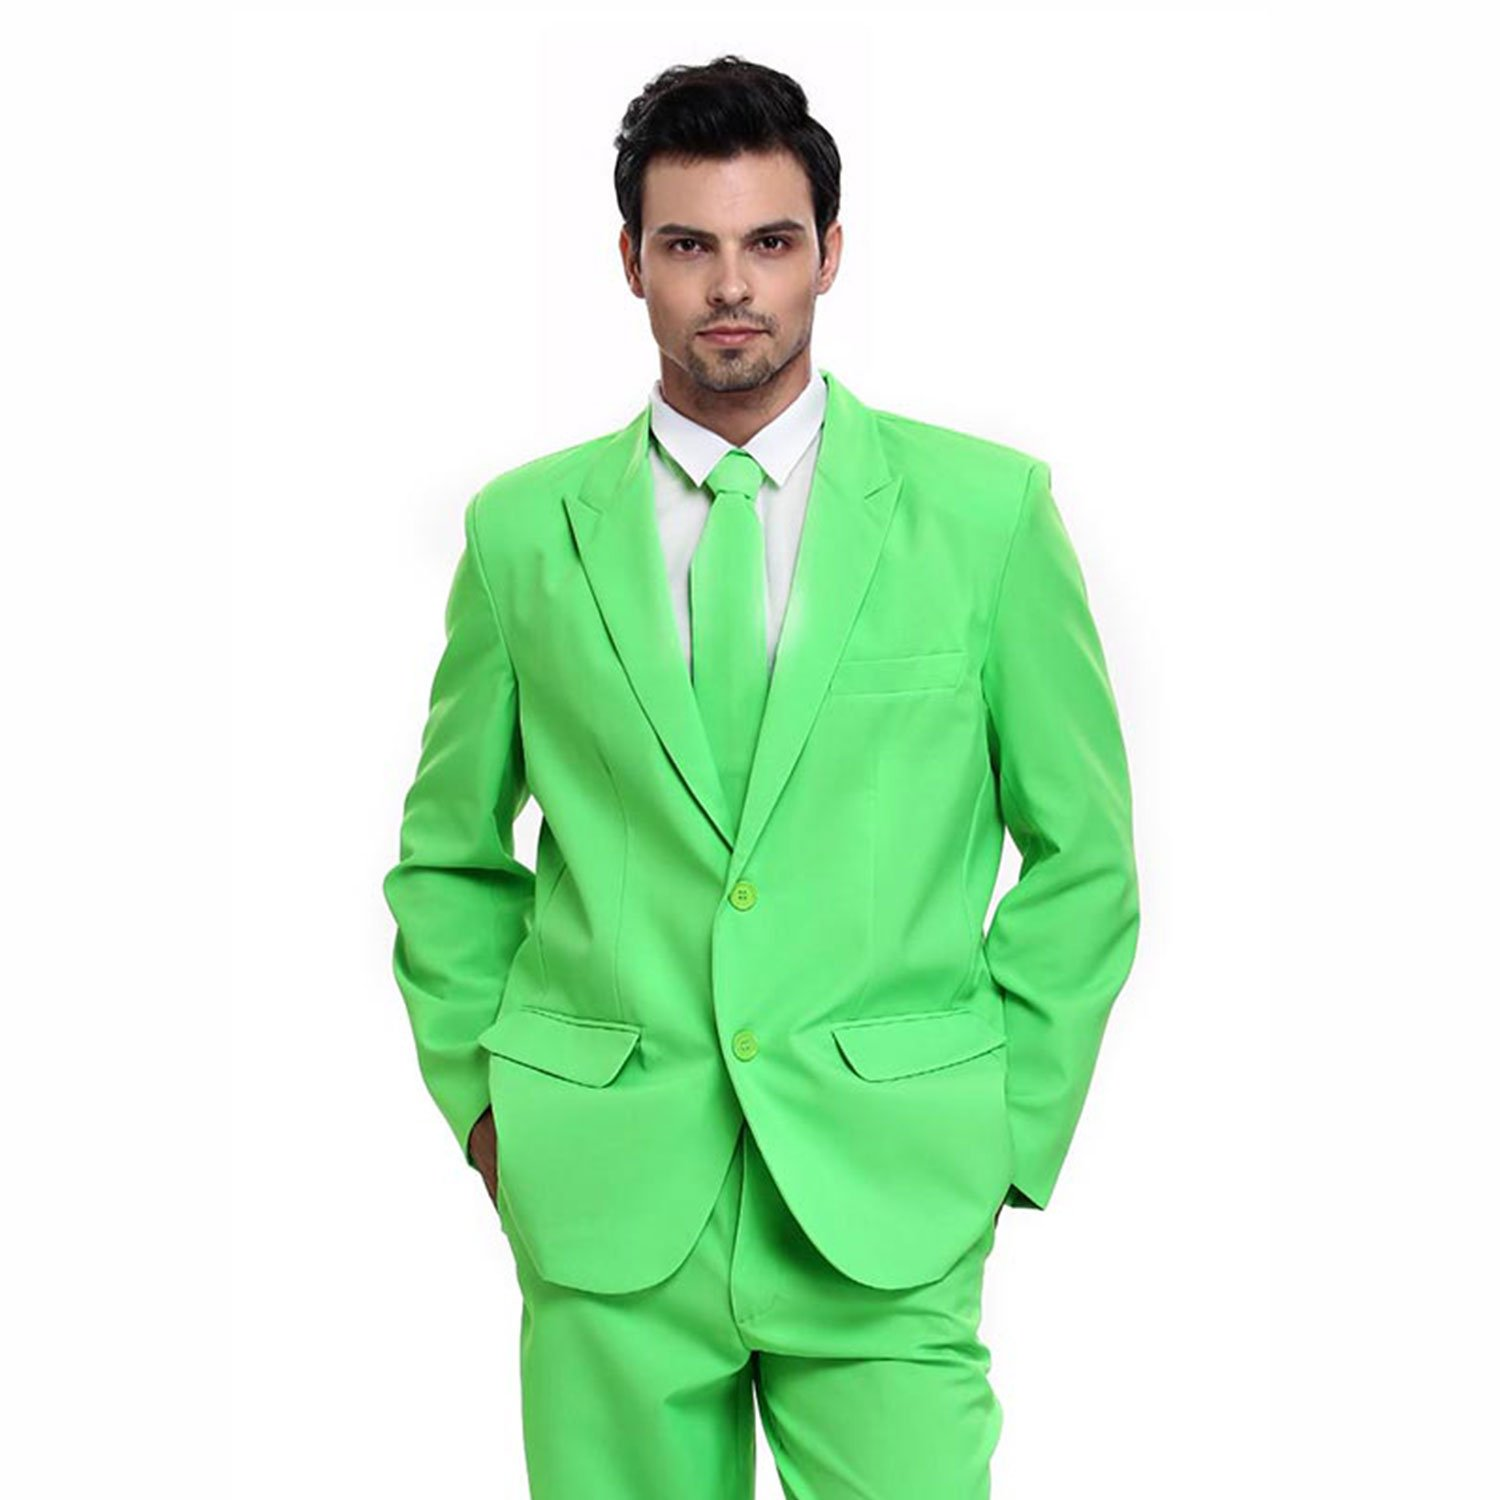 Christmas Party Suit Men.Stunning Neon Green Christmas Party Suit